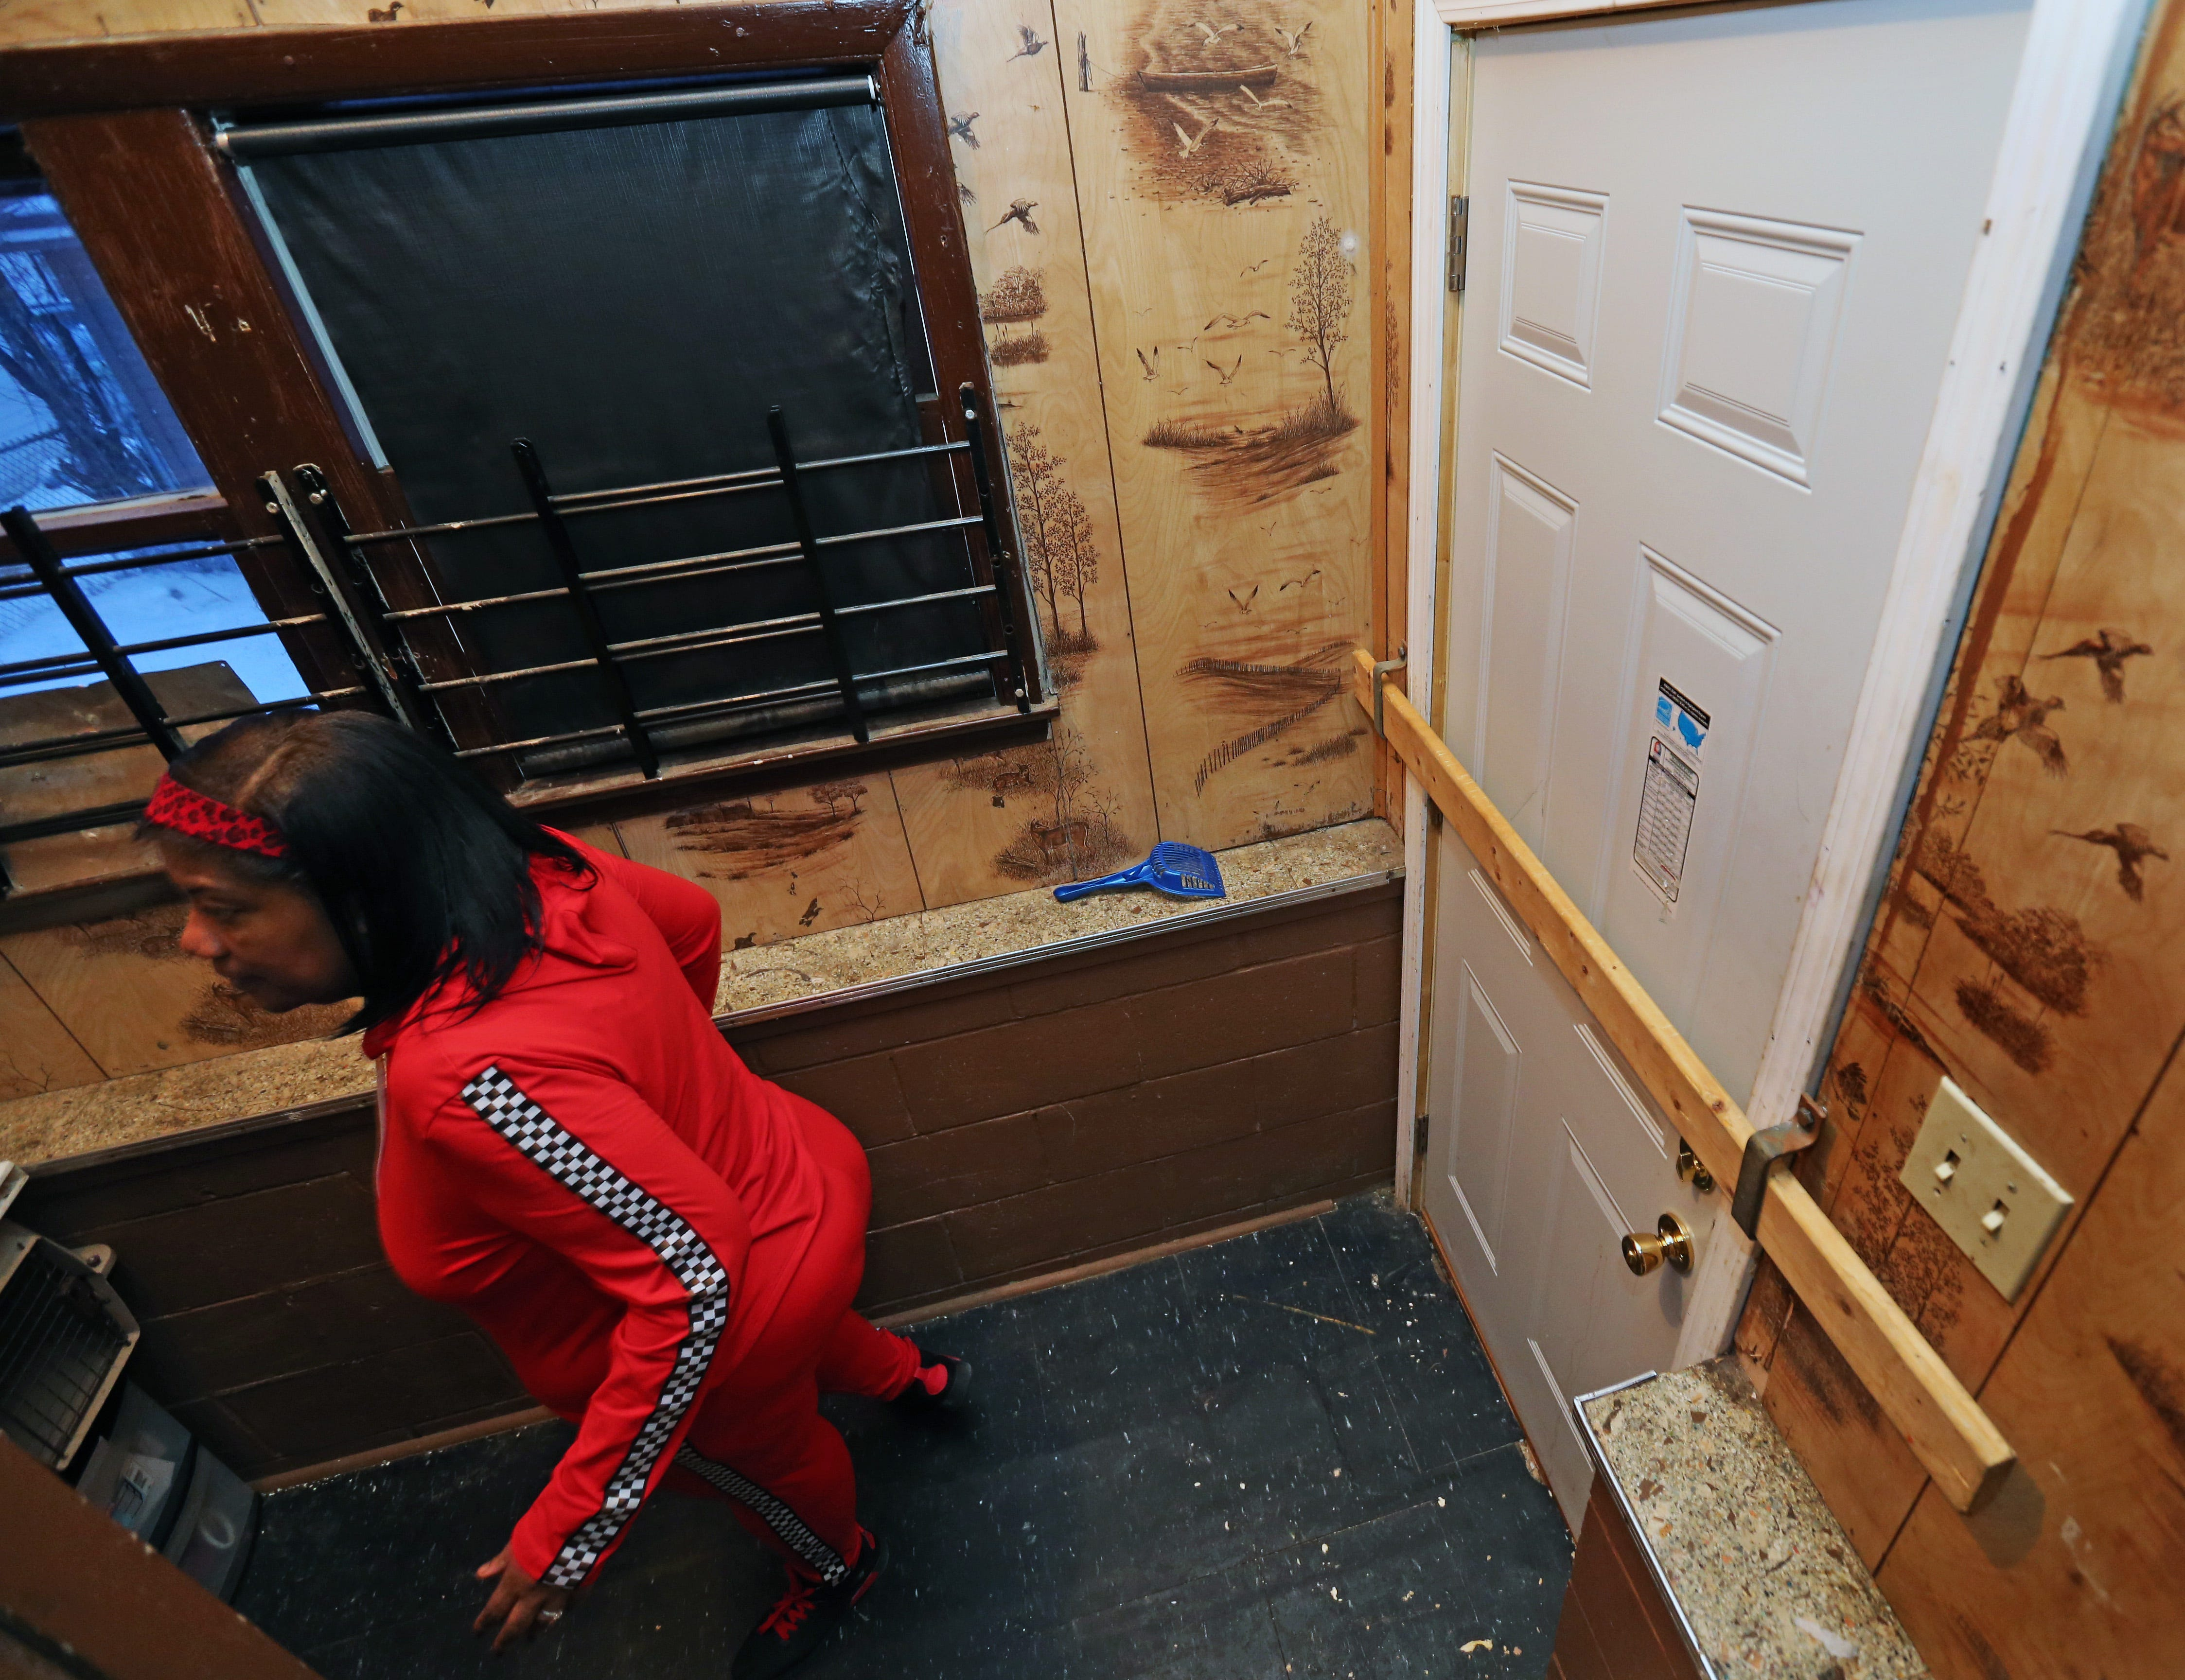 Christy Conery makes her way to her basement, passing by a side exterior door where landlord Lynda Williams uses a board to secure the door, on Jan. 30, 2020, in the 4600 block of North 36th Street. Shortly after moving into the rental property, Conery complained to the city building inspector about such problems as peeling paint, holes in the floor, metal safety bars, and plumbing.  Conery believes those complaints were the reason Williams sent her an eviction notice. Williams said Conery violated a no-pet policy.